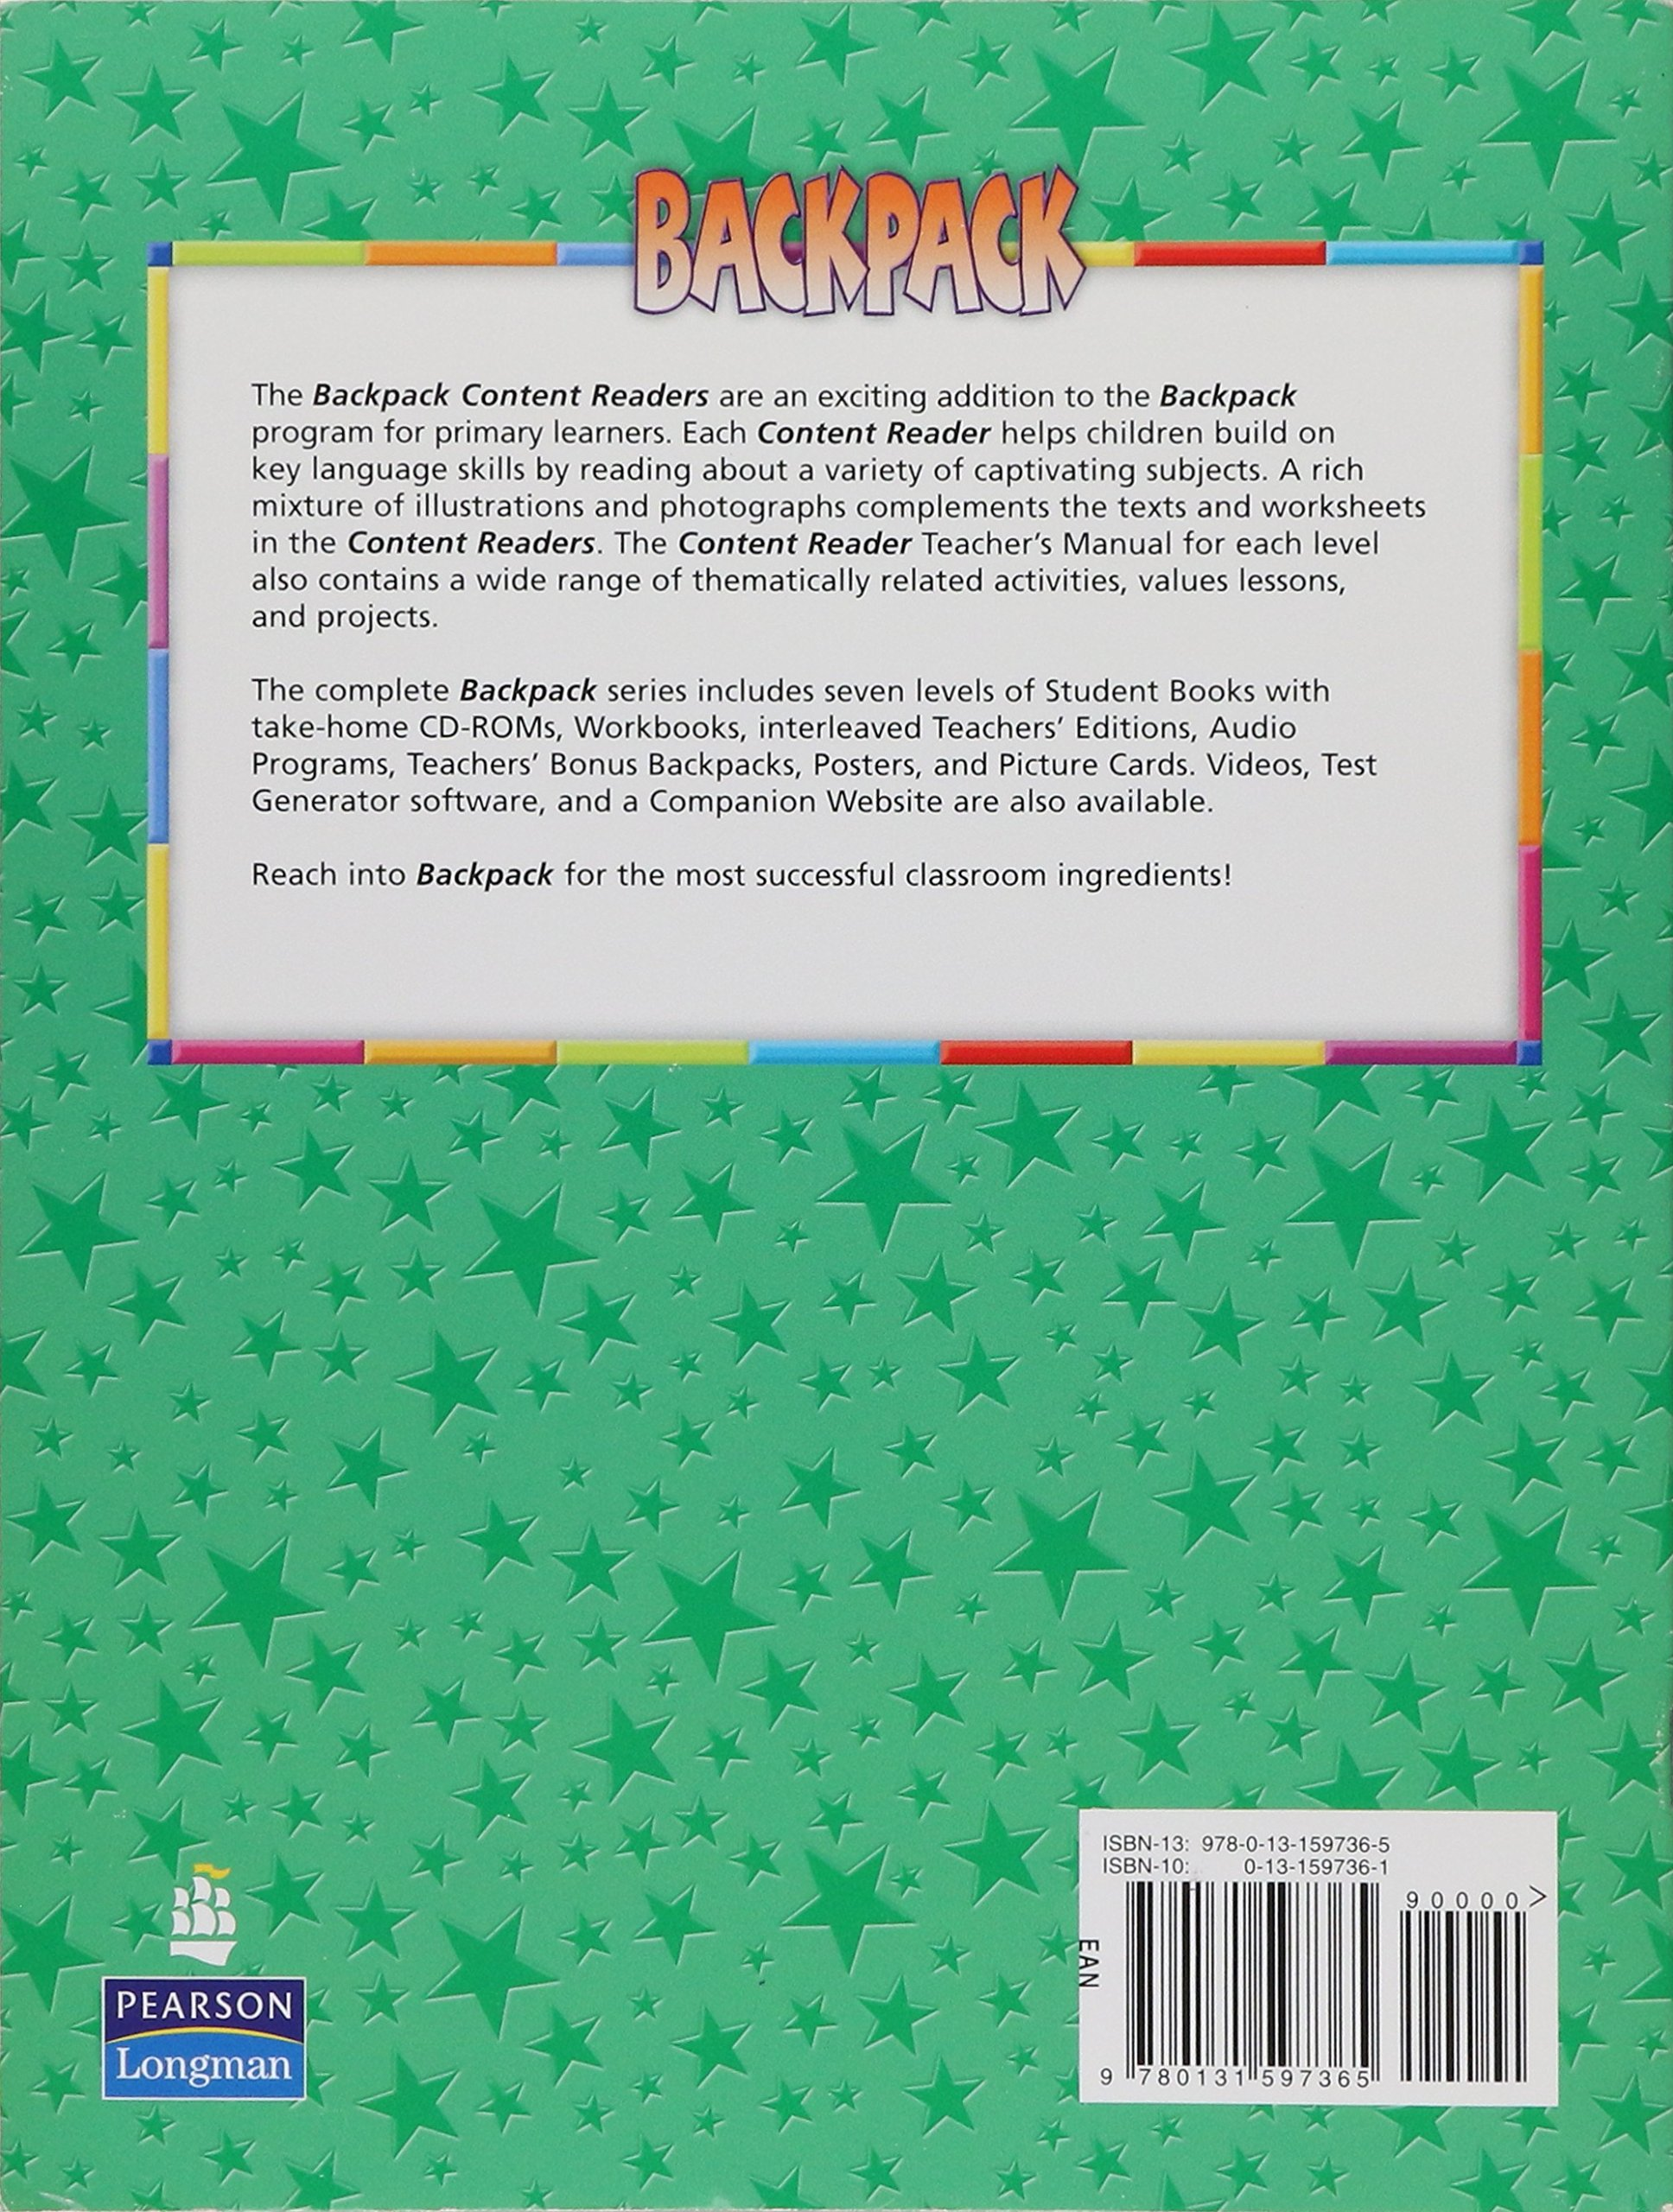 Buy Backpack 2 Content Reader Book Online at Low Prices in